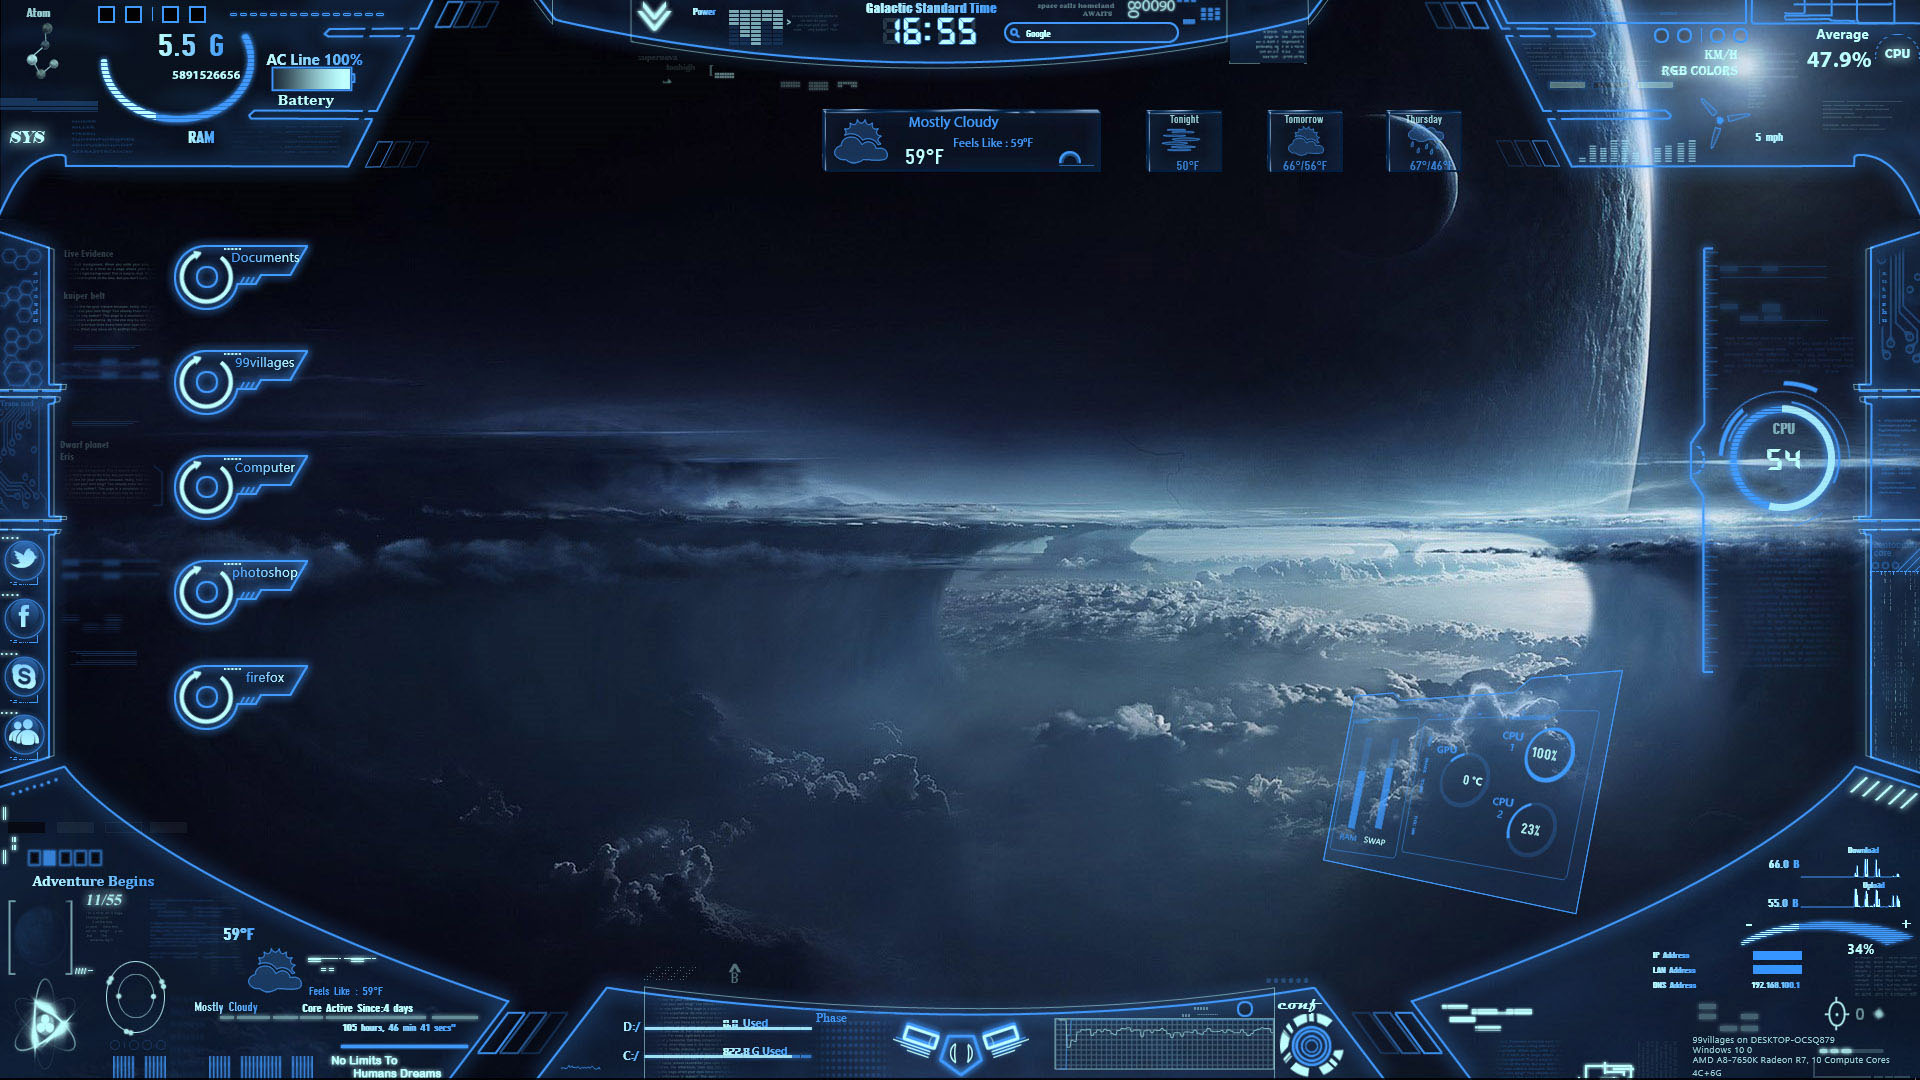 Neon Space Rainmeter Rainmeter skin & Theme [windows 7/8/10]